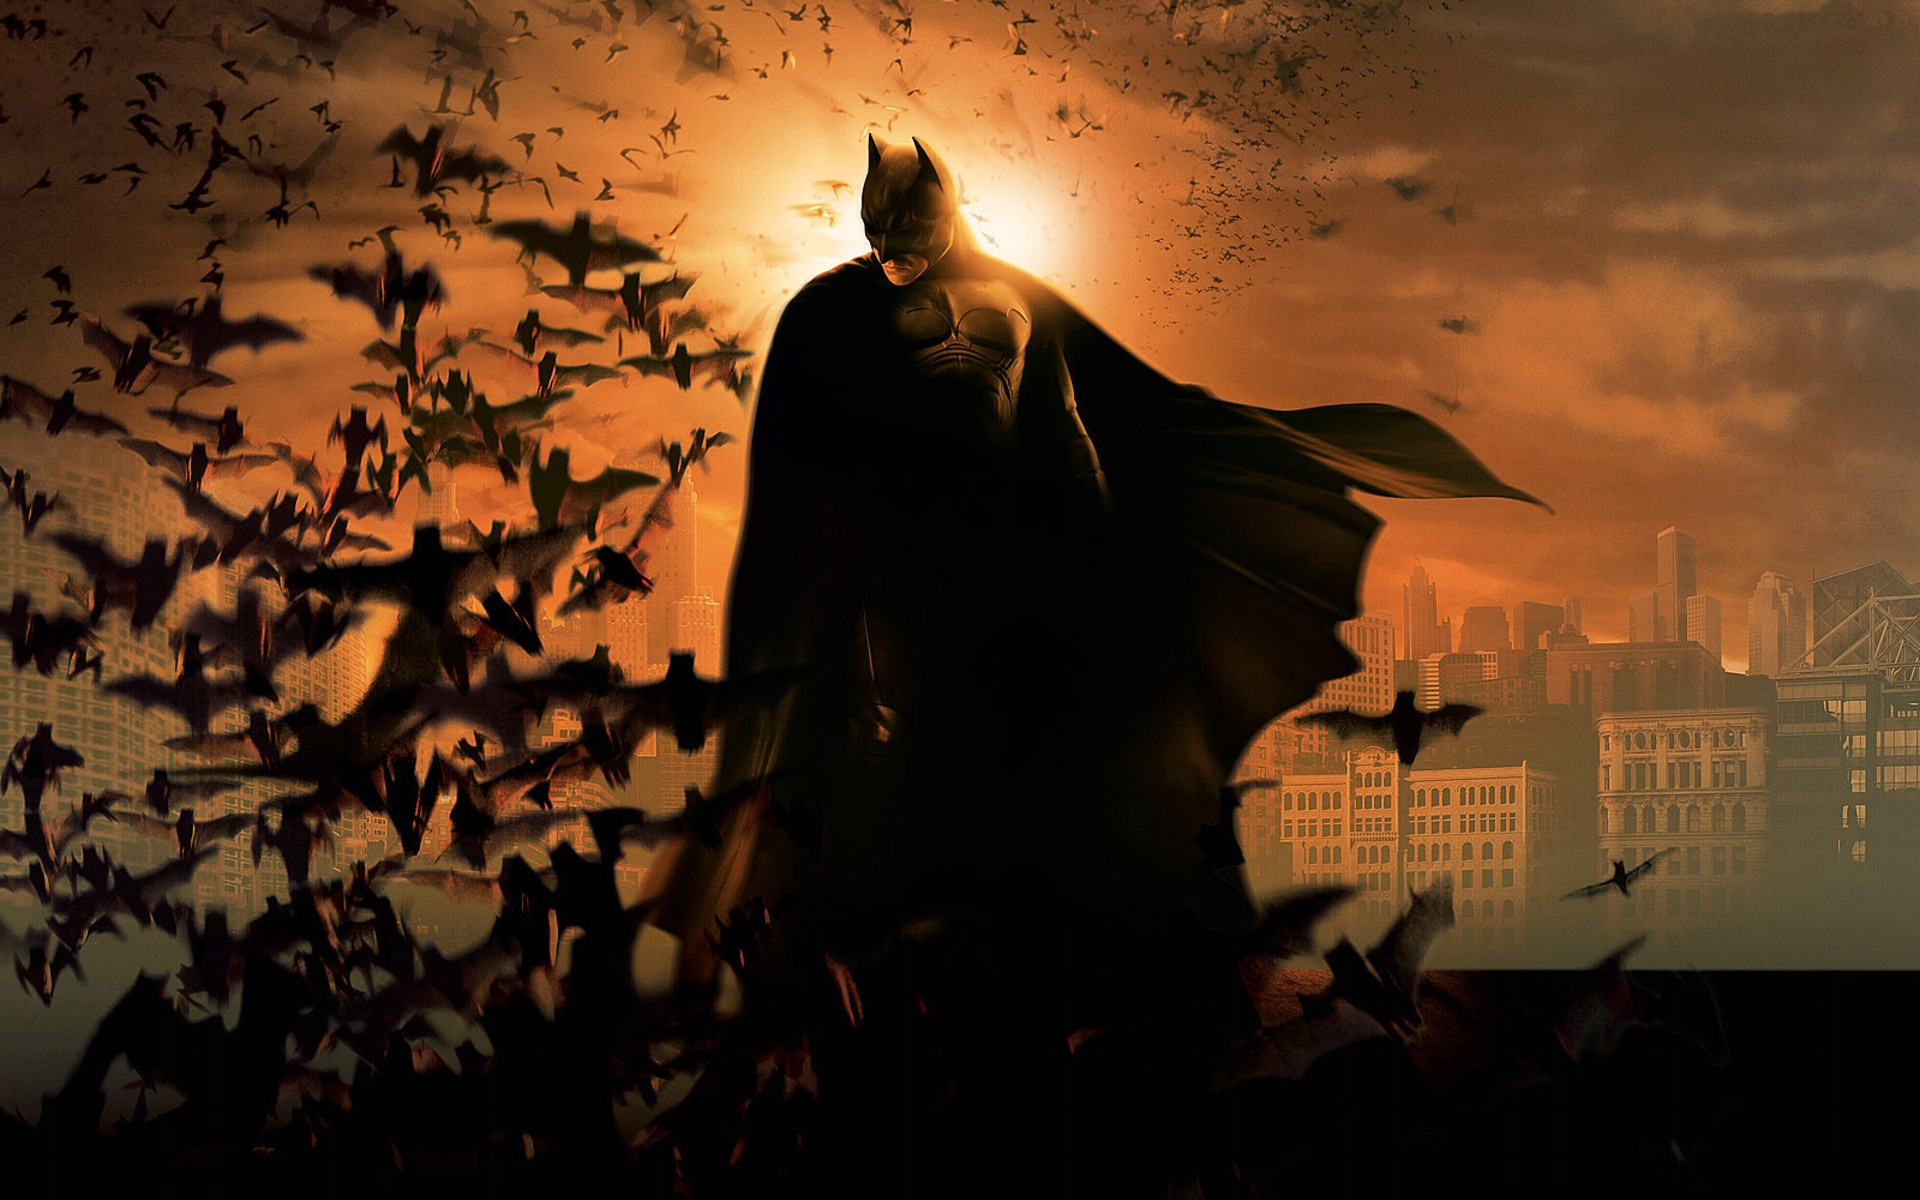 the Dark Knight Rises Wallpaper - Batman Wallpaper ...